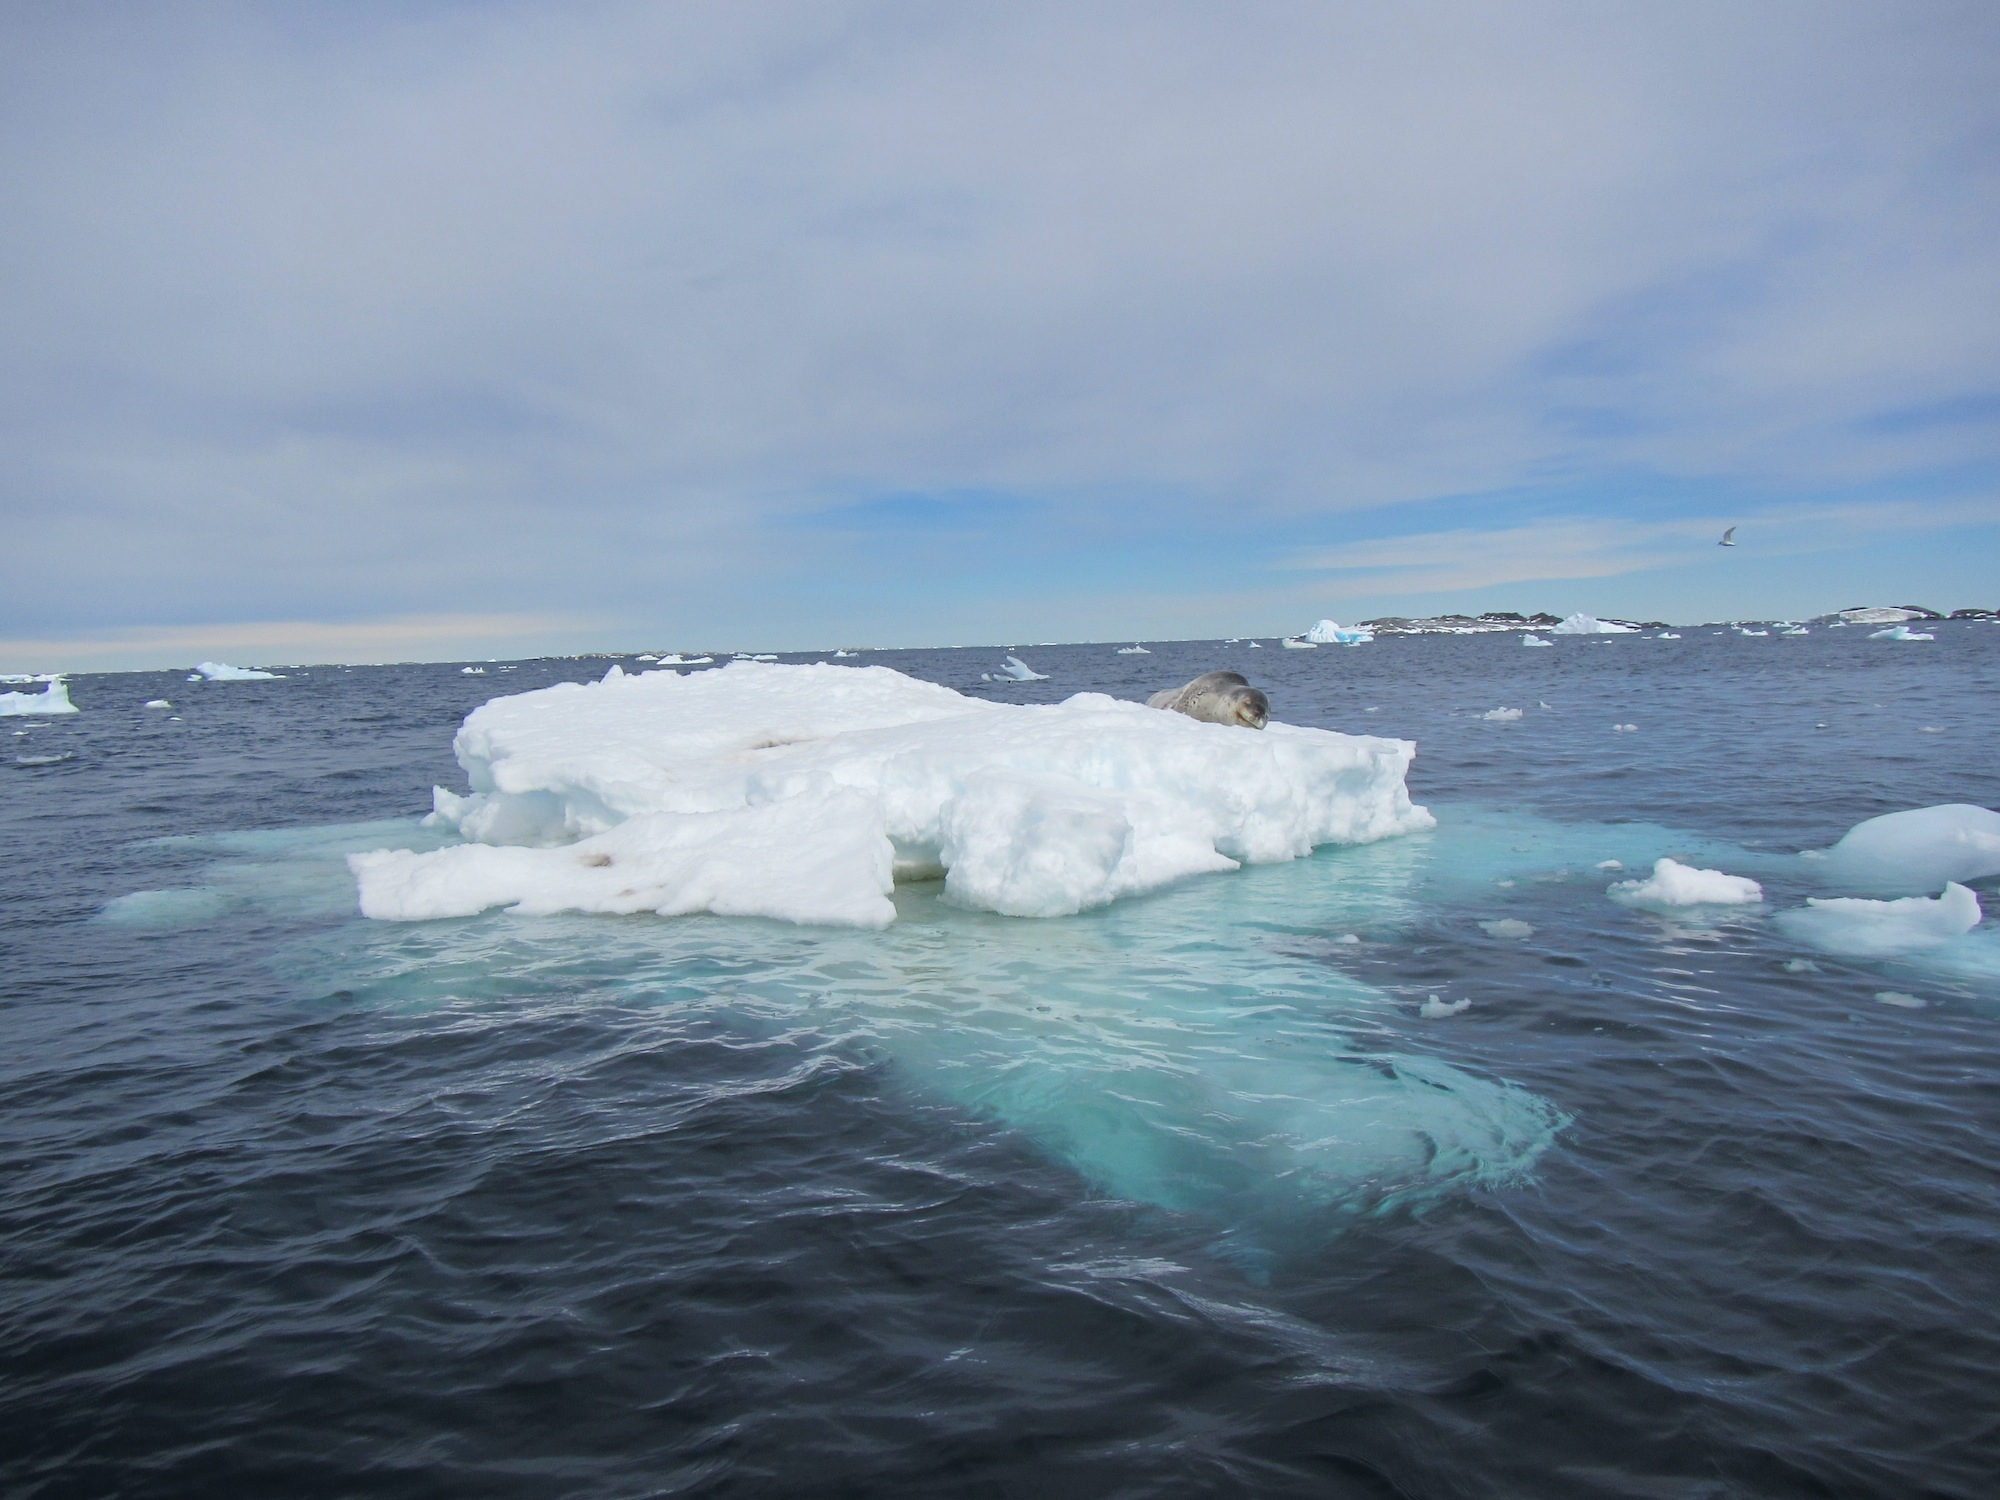 A leopard seal hauled out on an ice floe.